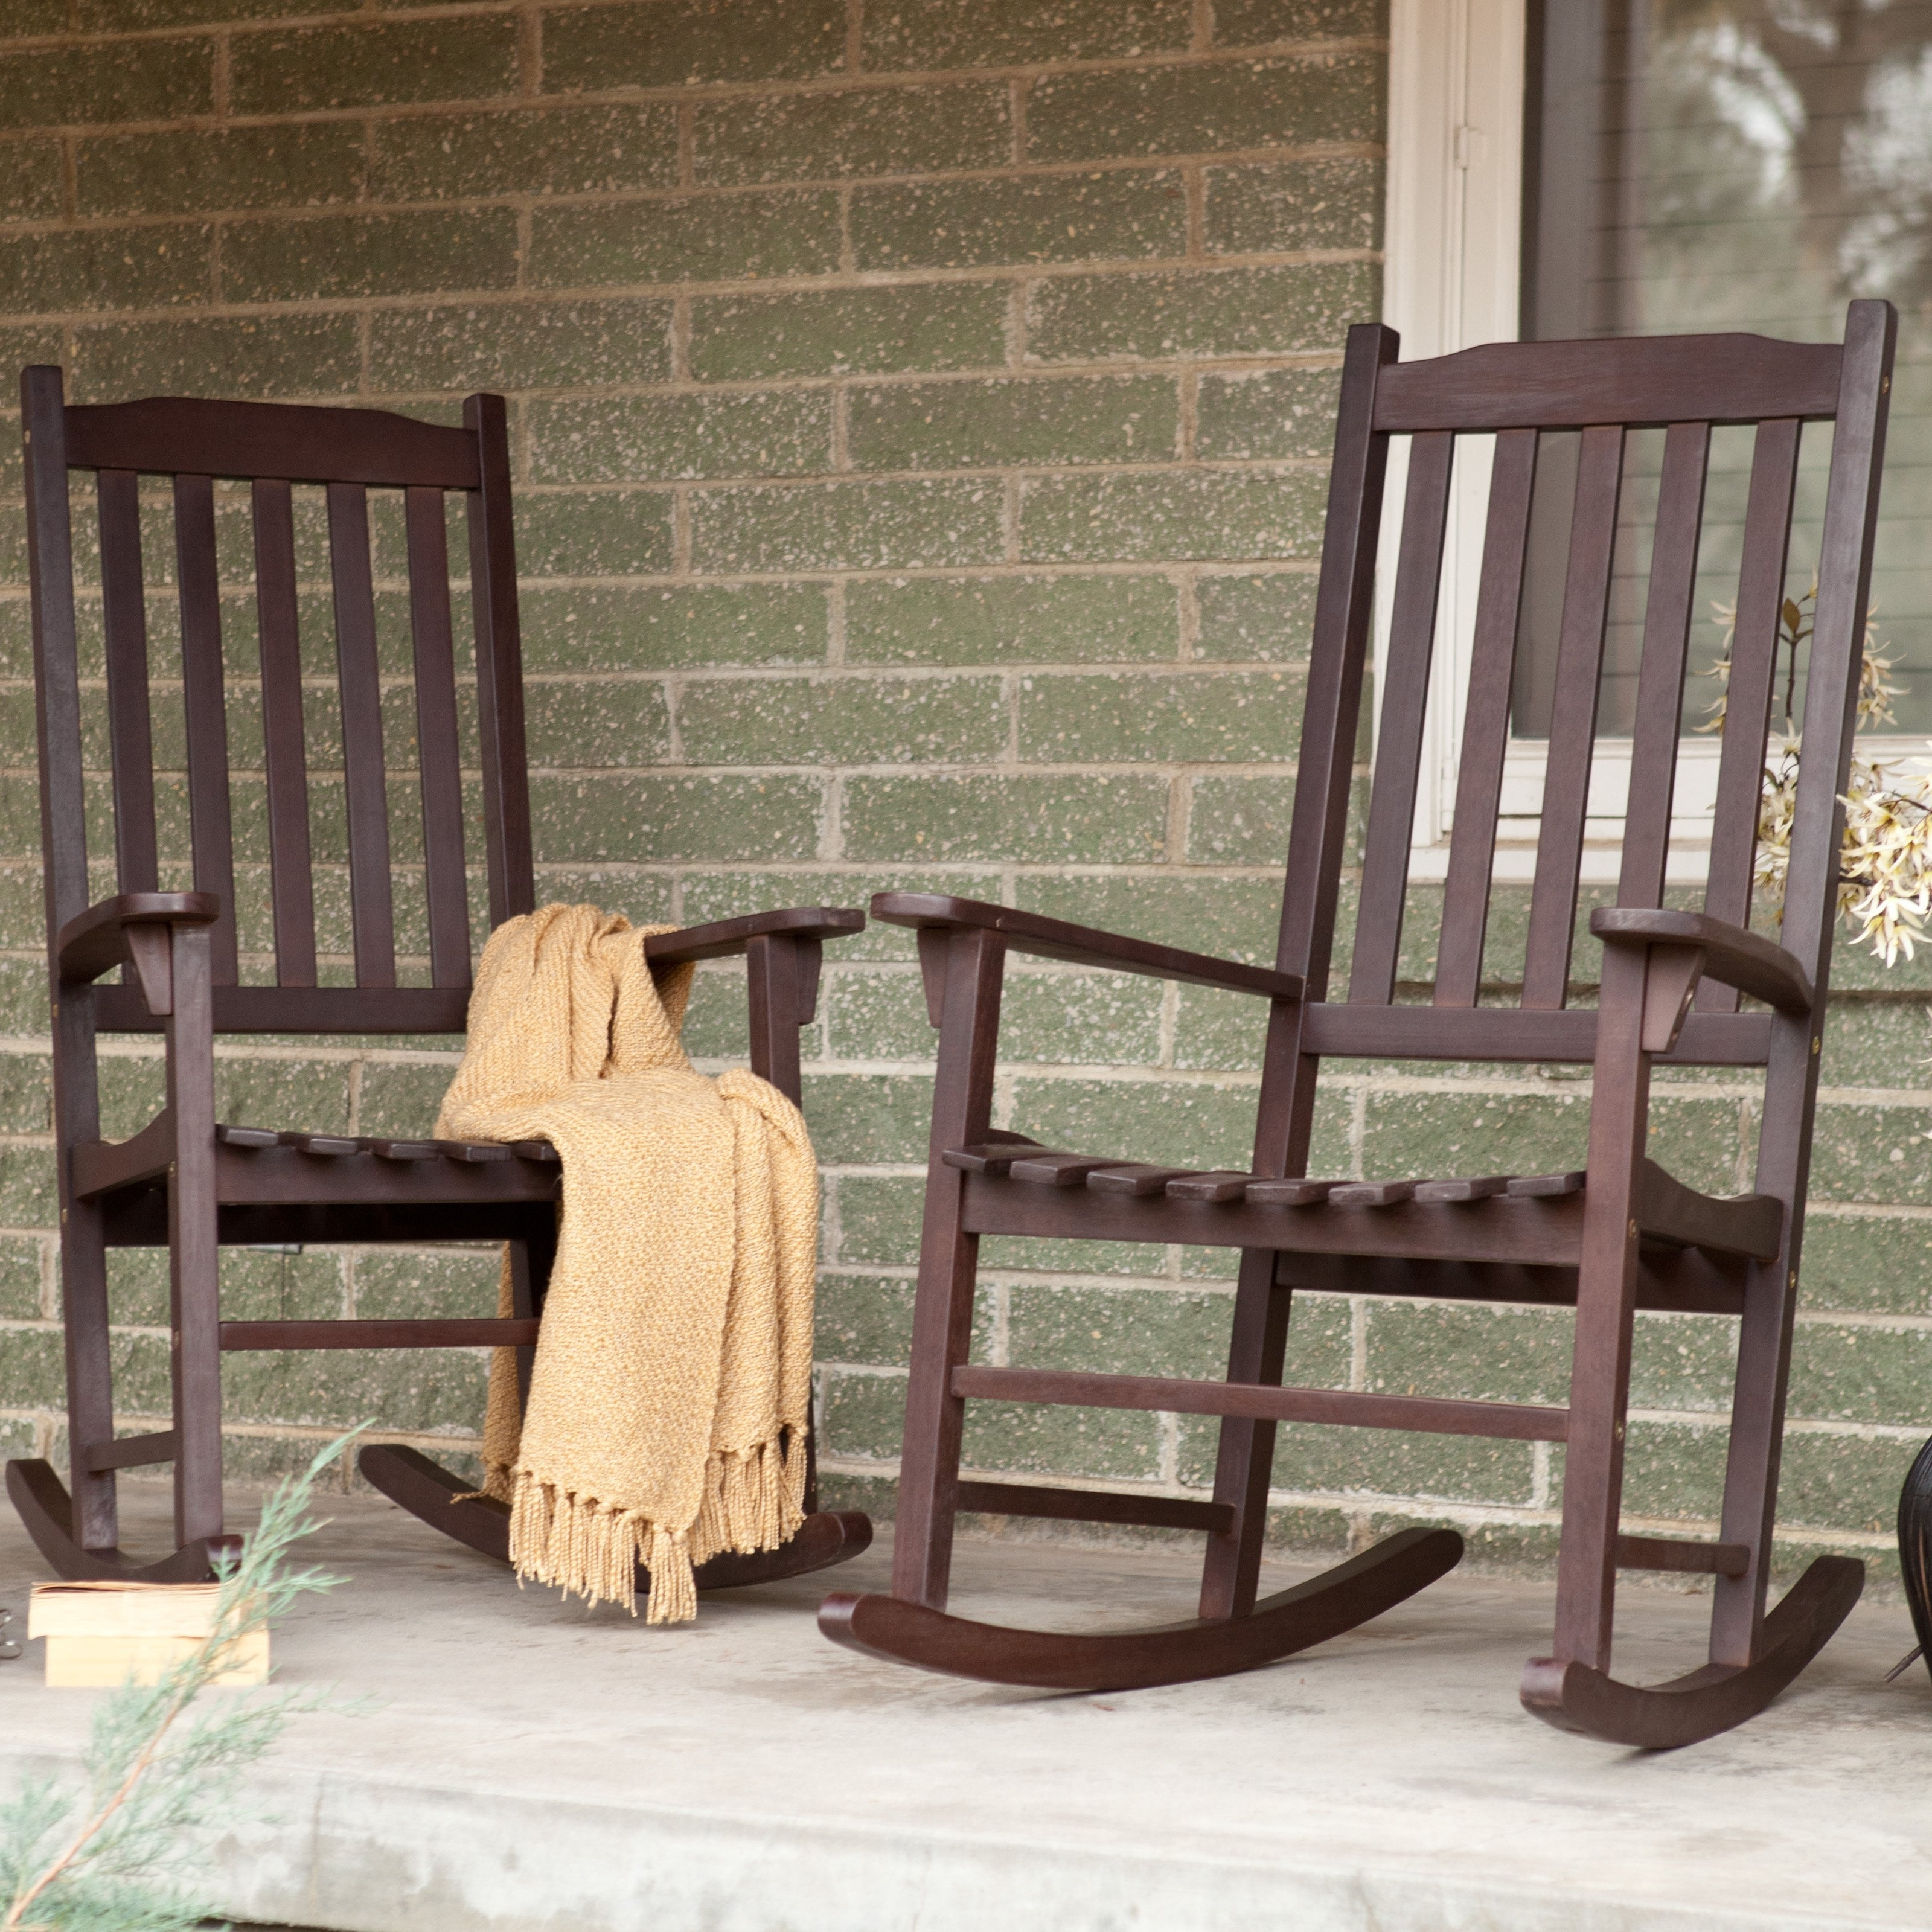 How To Choose Comfortable Outdoor Rocking Chairs – Yonohomedesign In Brown Wicker Patio Rocking Chairs (View 2 of 15)